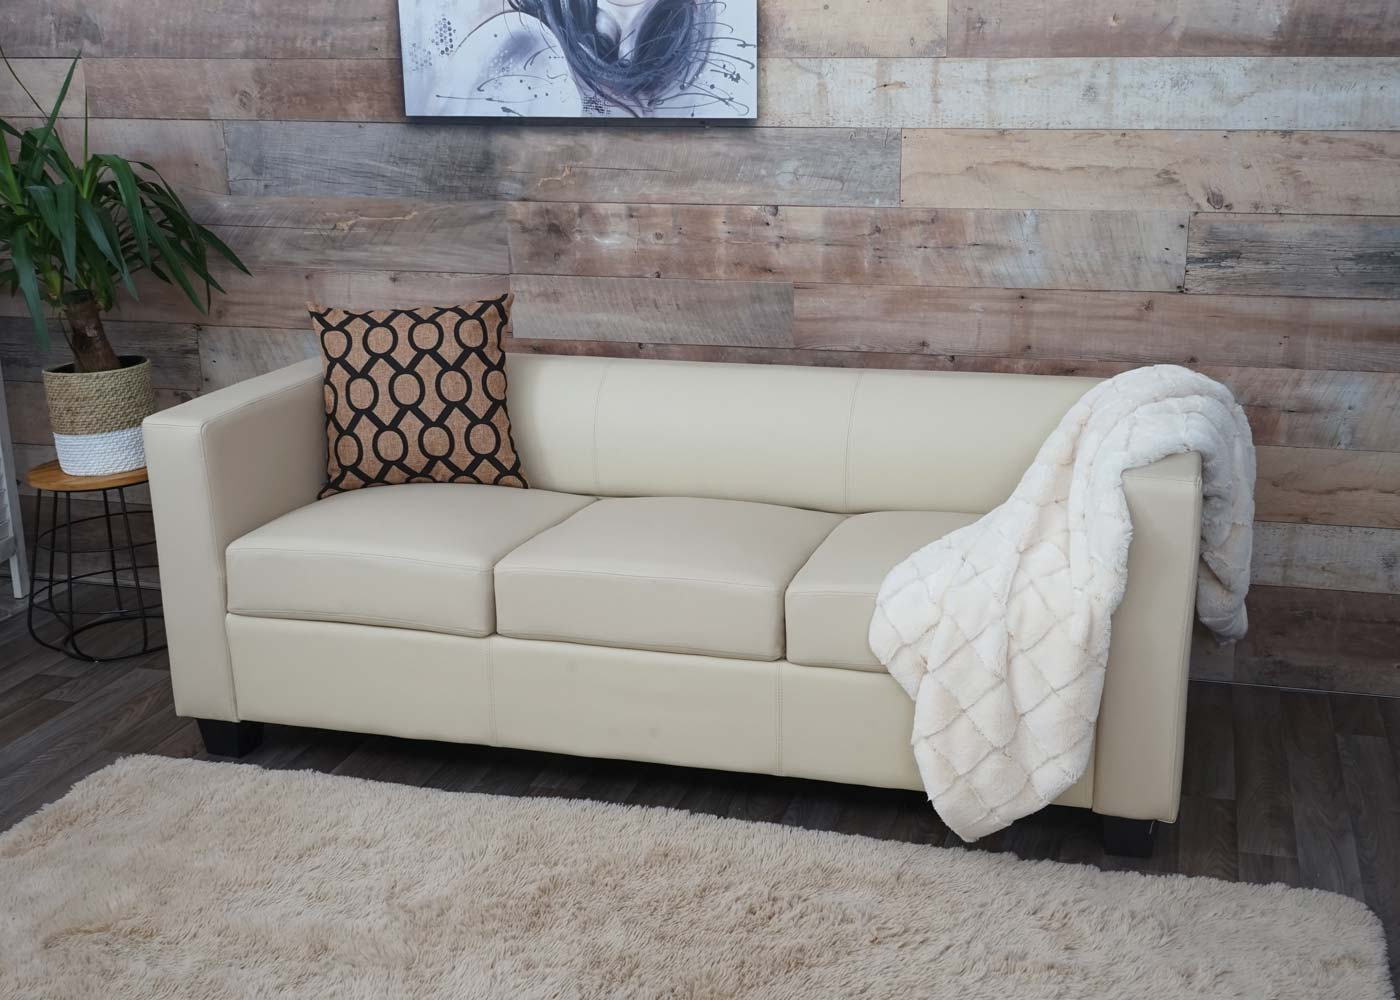 3er Sofa Couch Loungesofa Lille Ambiente-Bild